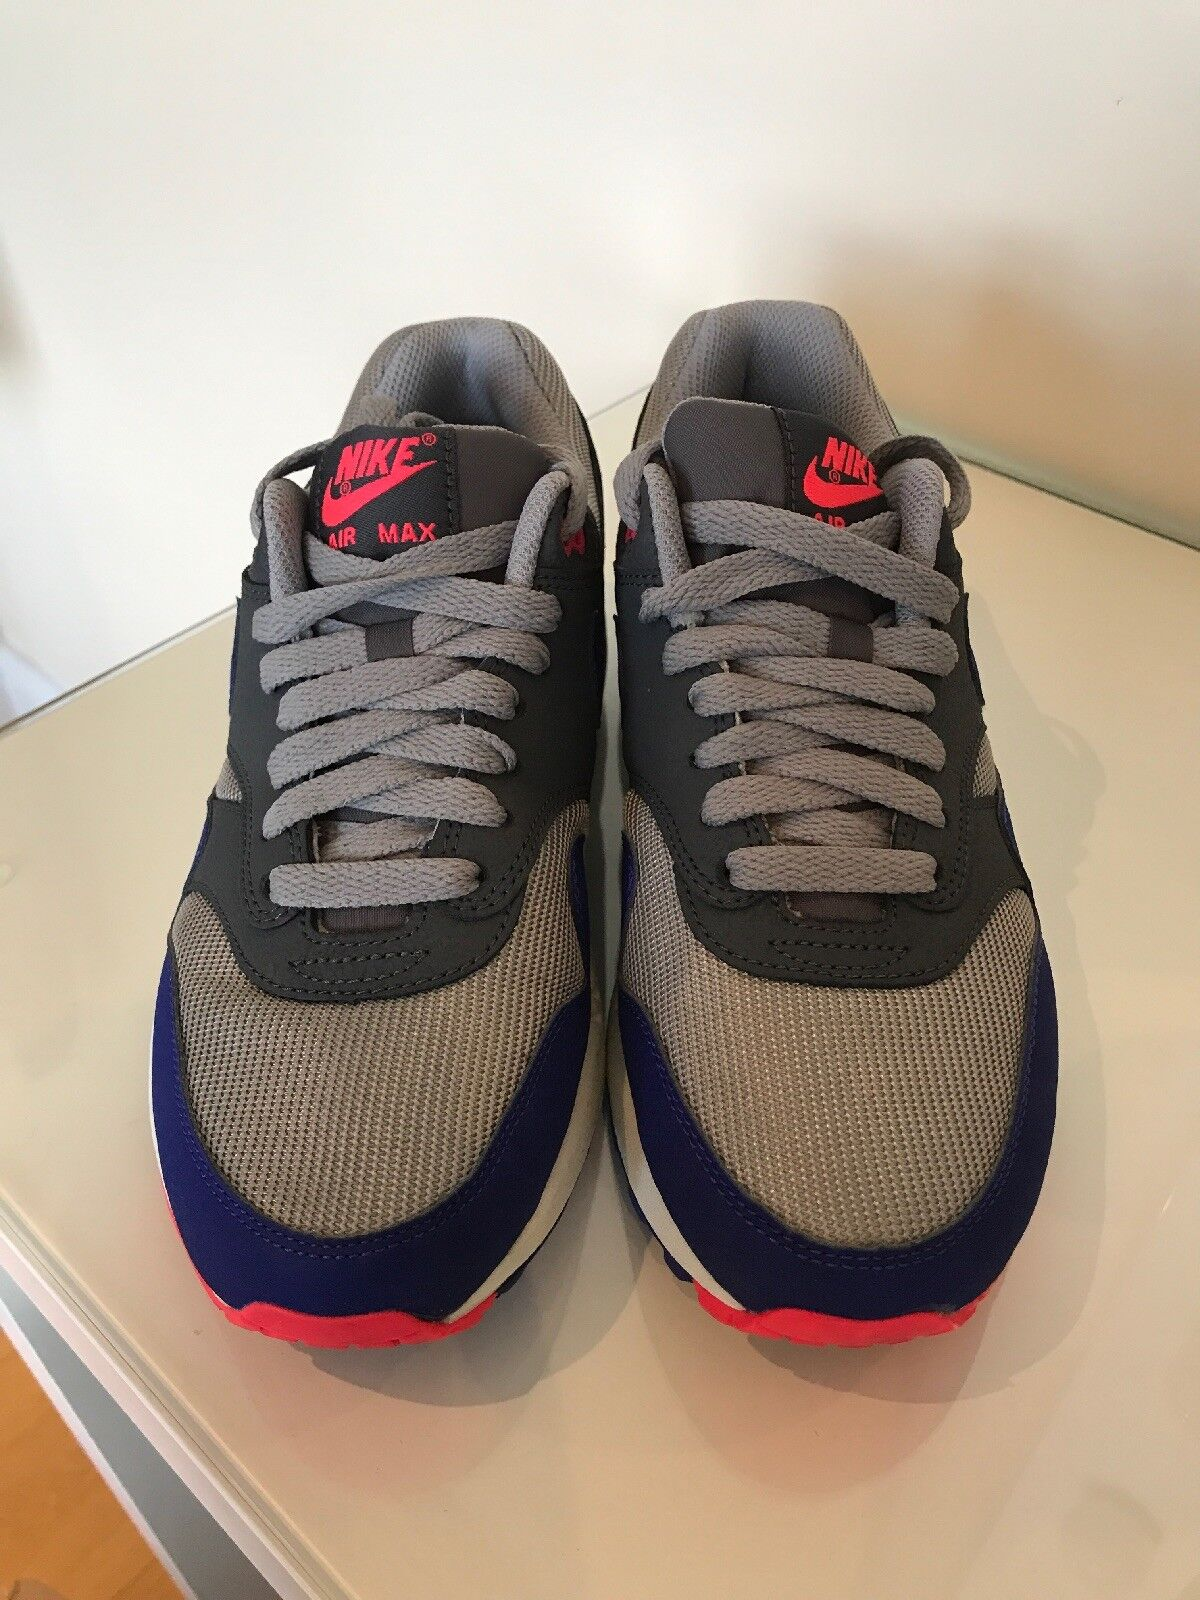 info for 12c84 f0eac Air Max 1 Essential UK 5.5 - Dark grau grau grau Solar rot (Code 537383  006) a2714a